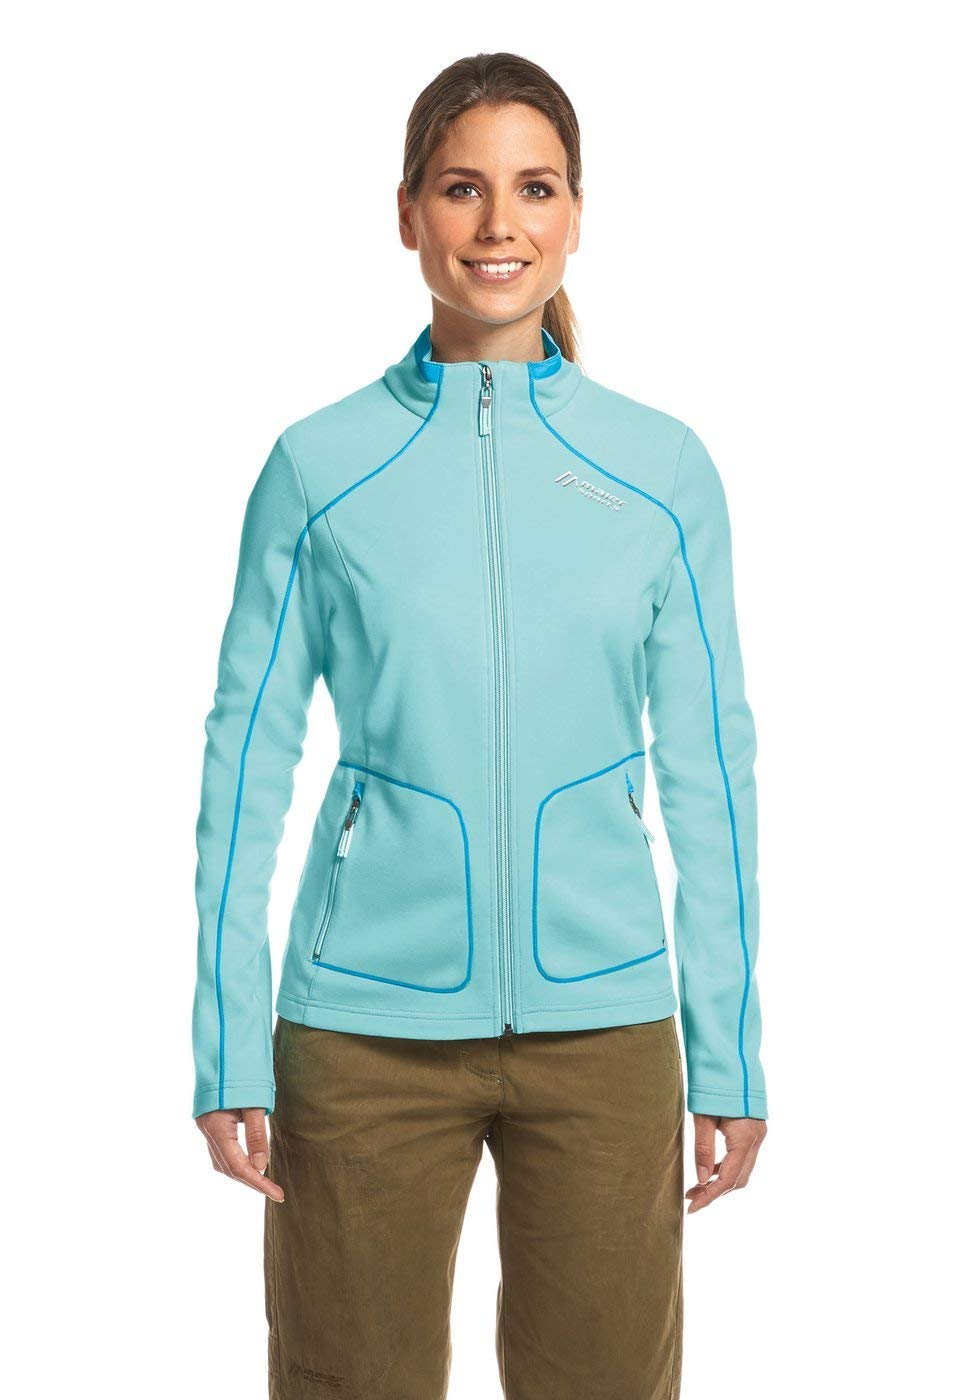 Maier Sports Damen Fleecejacke Colwyn - radiance - 38